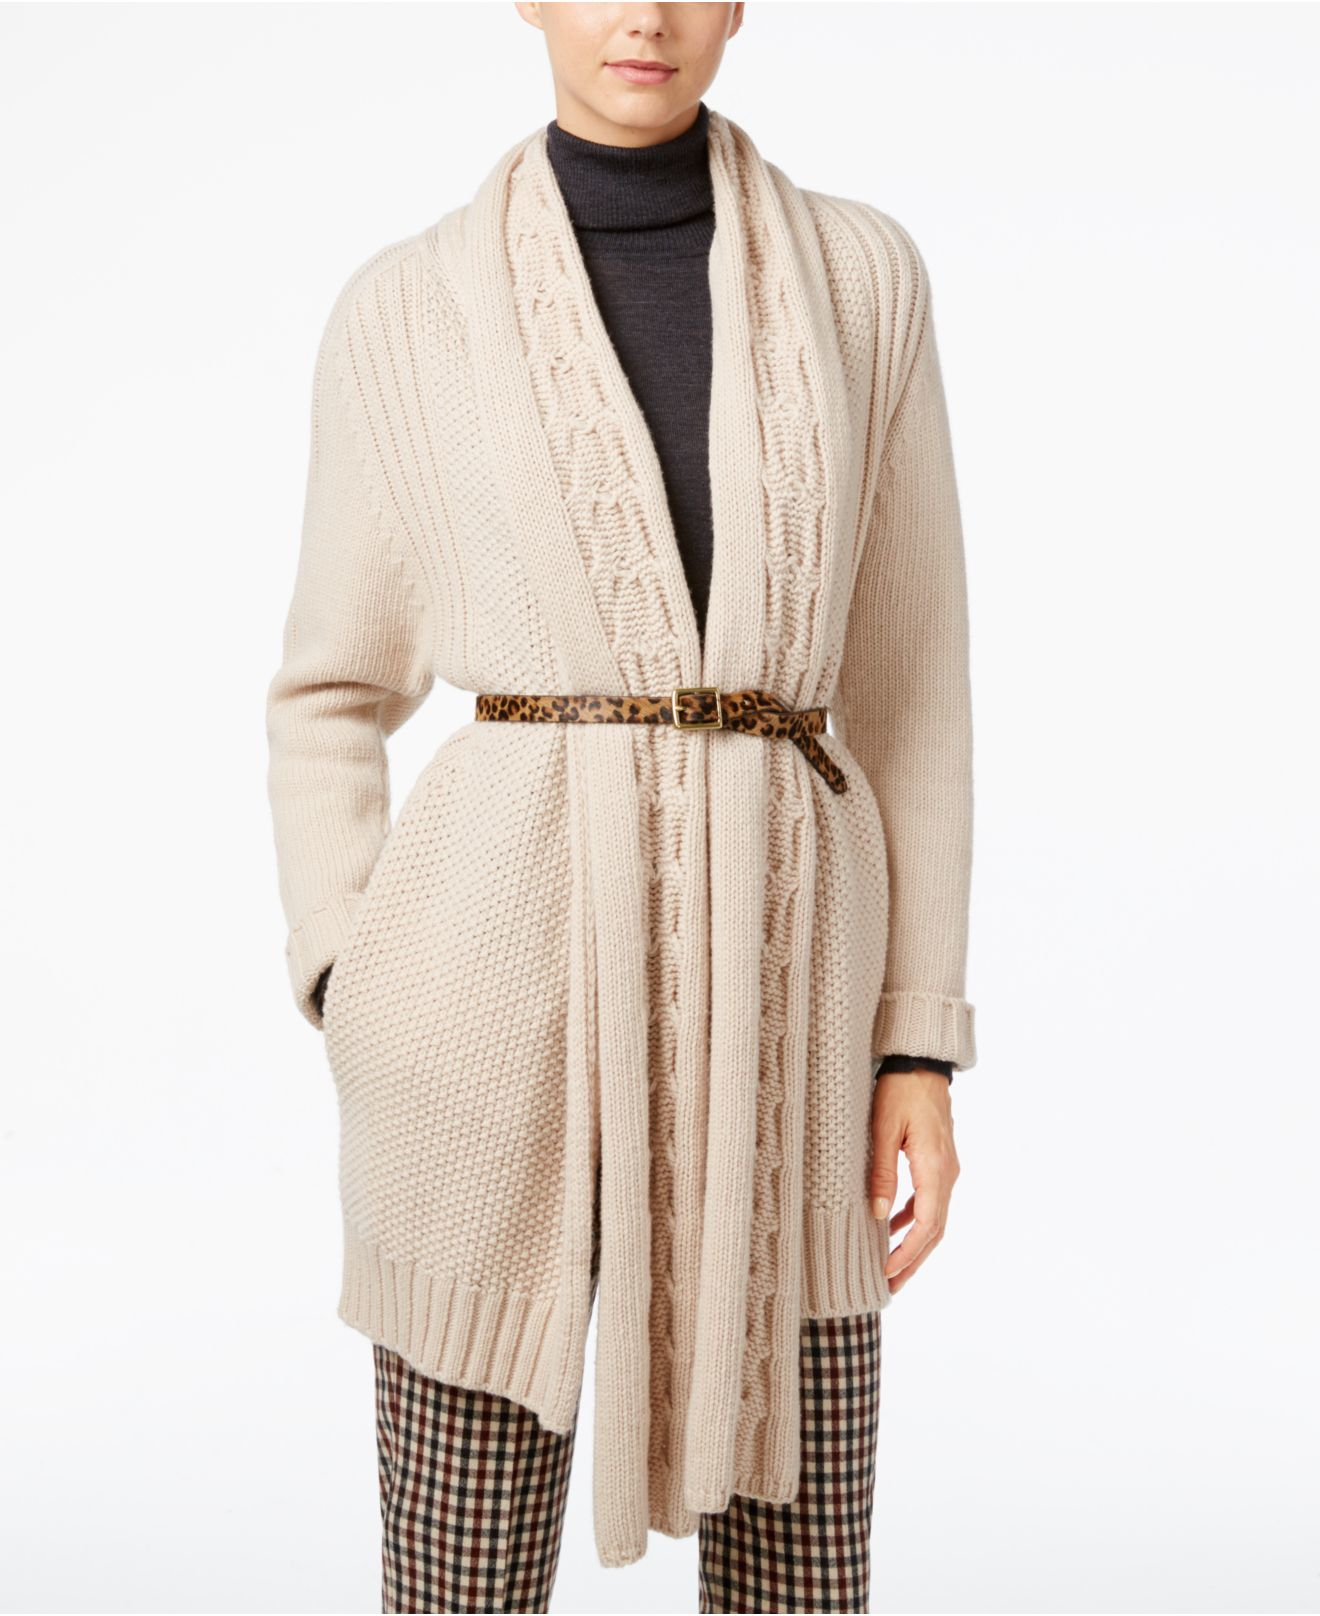 max mara weekend max mara cable knit wool sweater in natural sand lyst. Black Bedroom Furniture Sets. Home Design Ideas